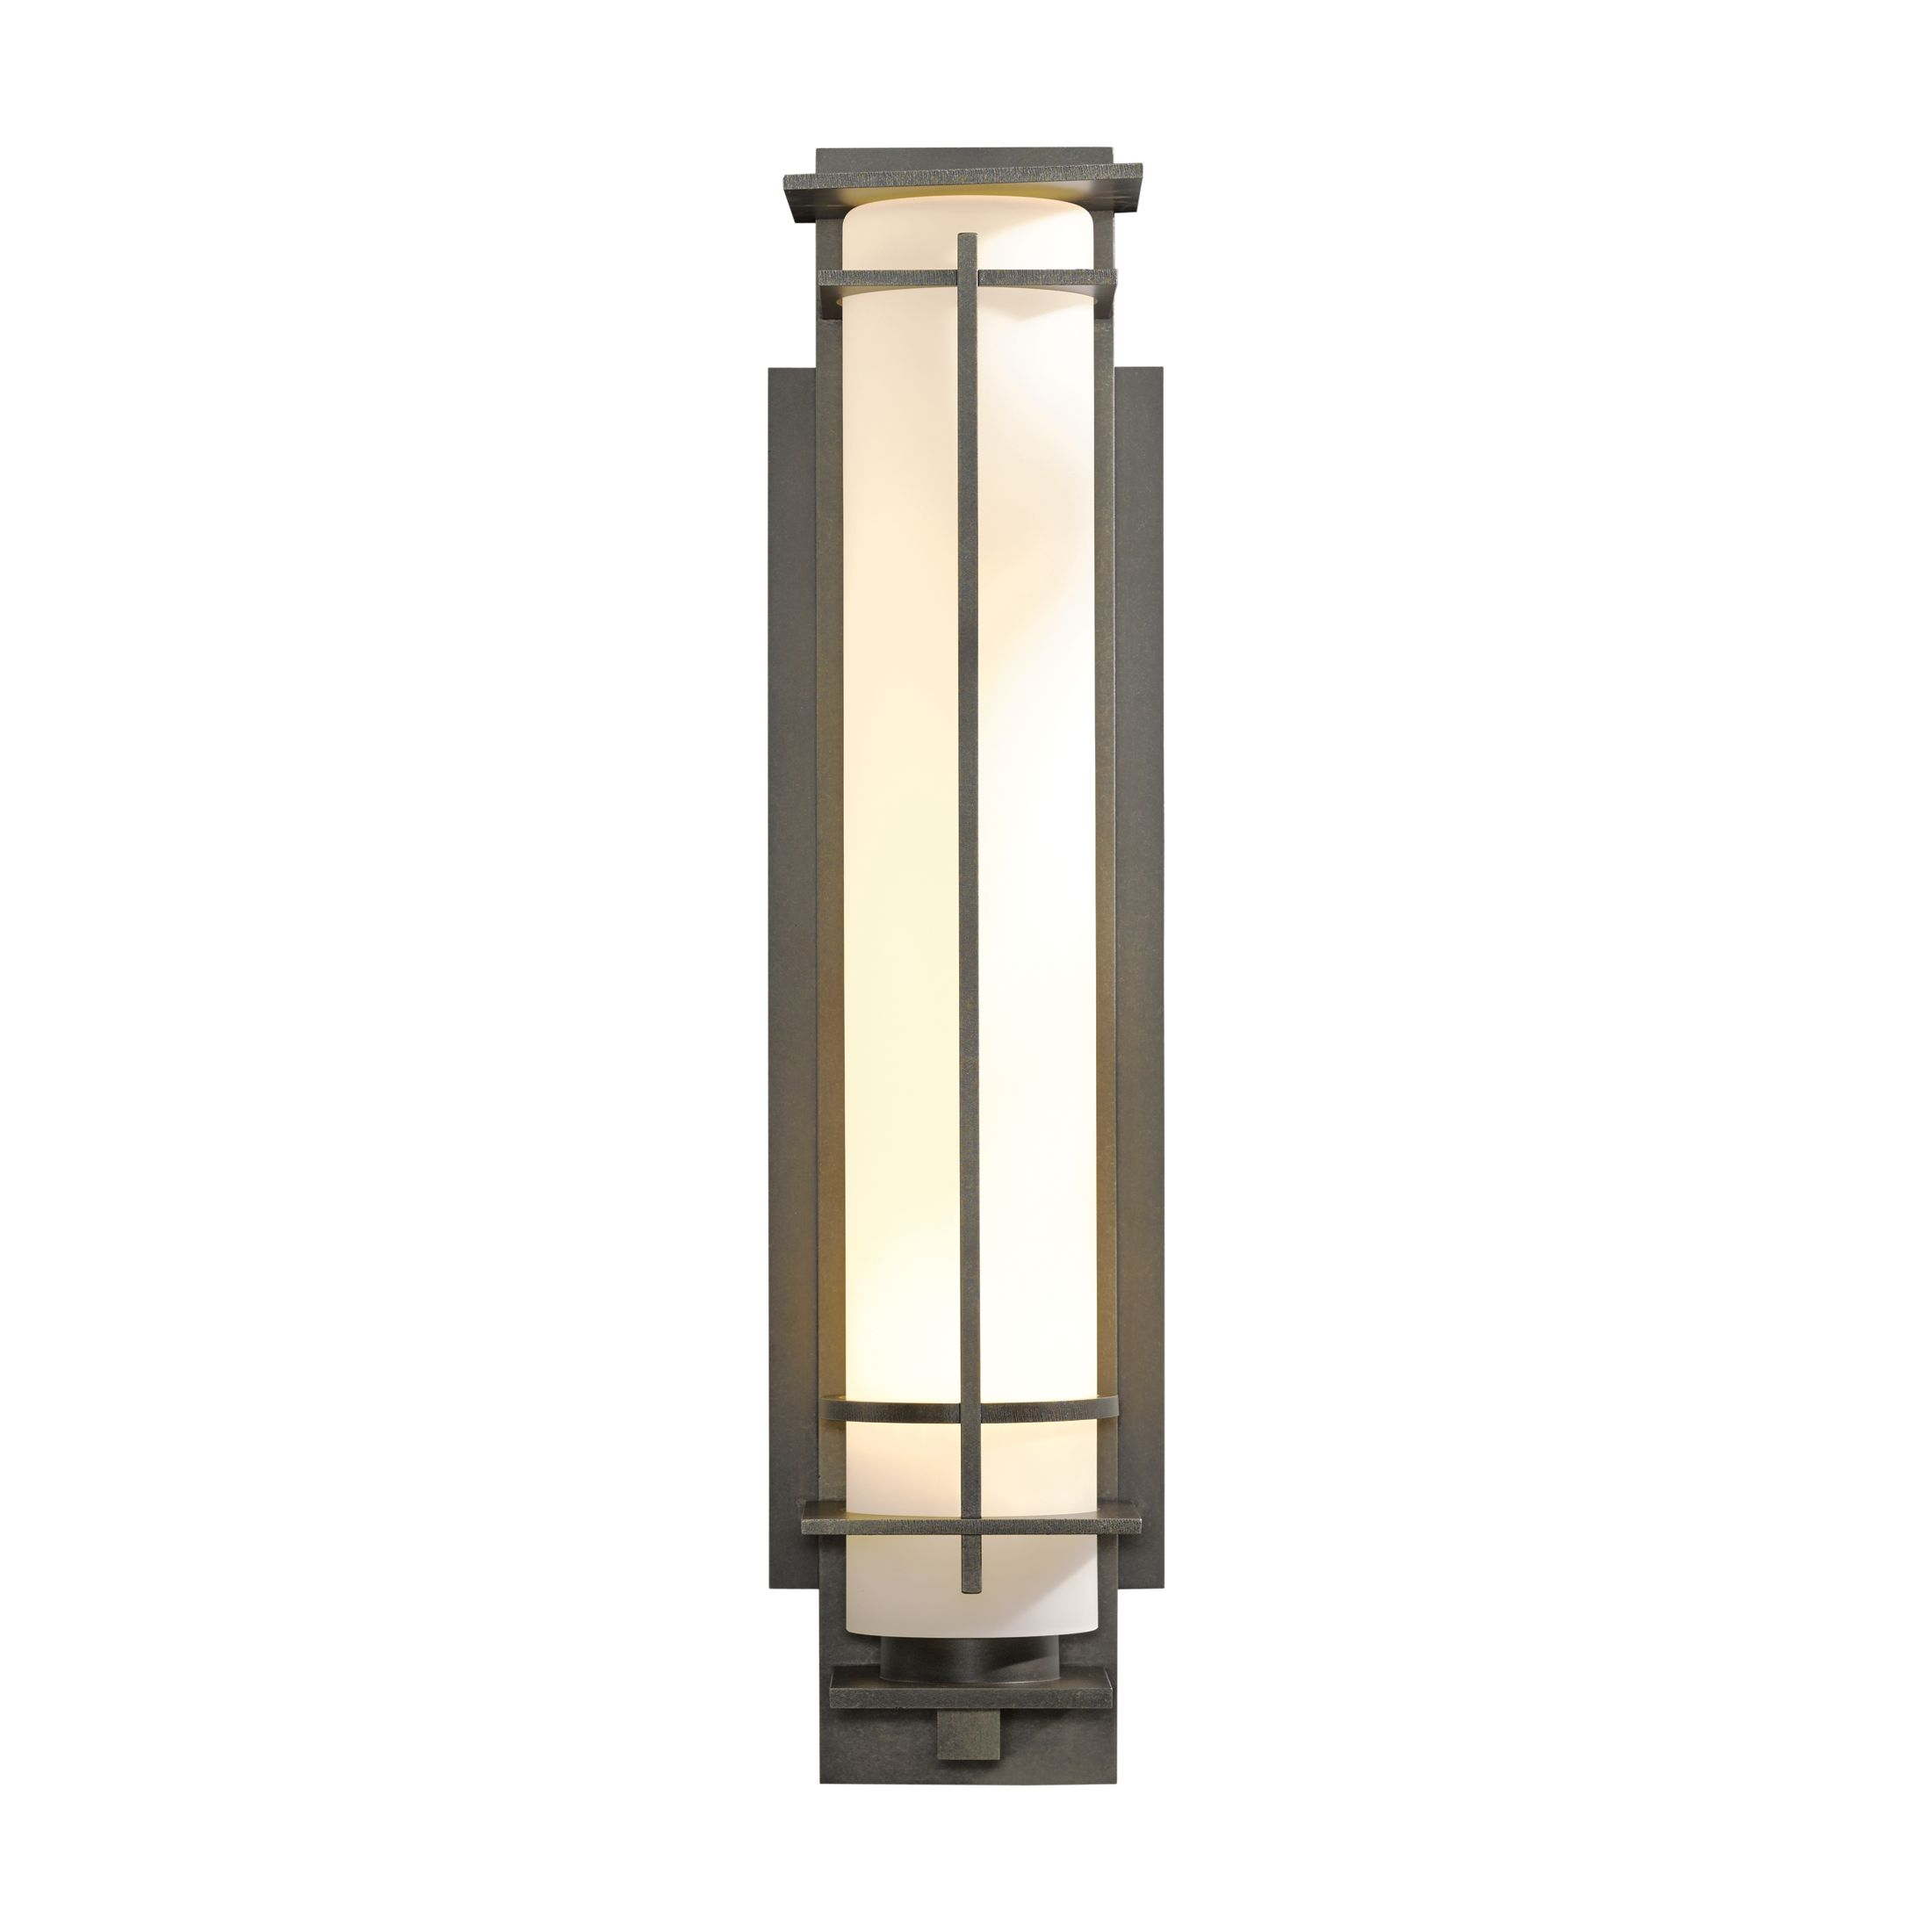 Thumbnail for After Hours Large Outdoor Sconce